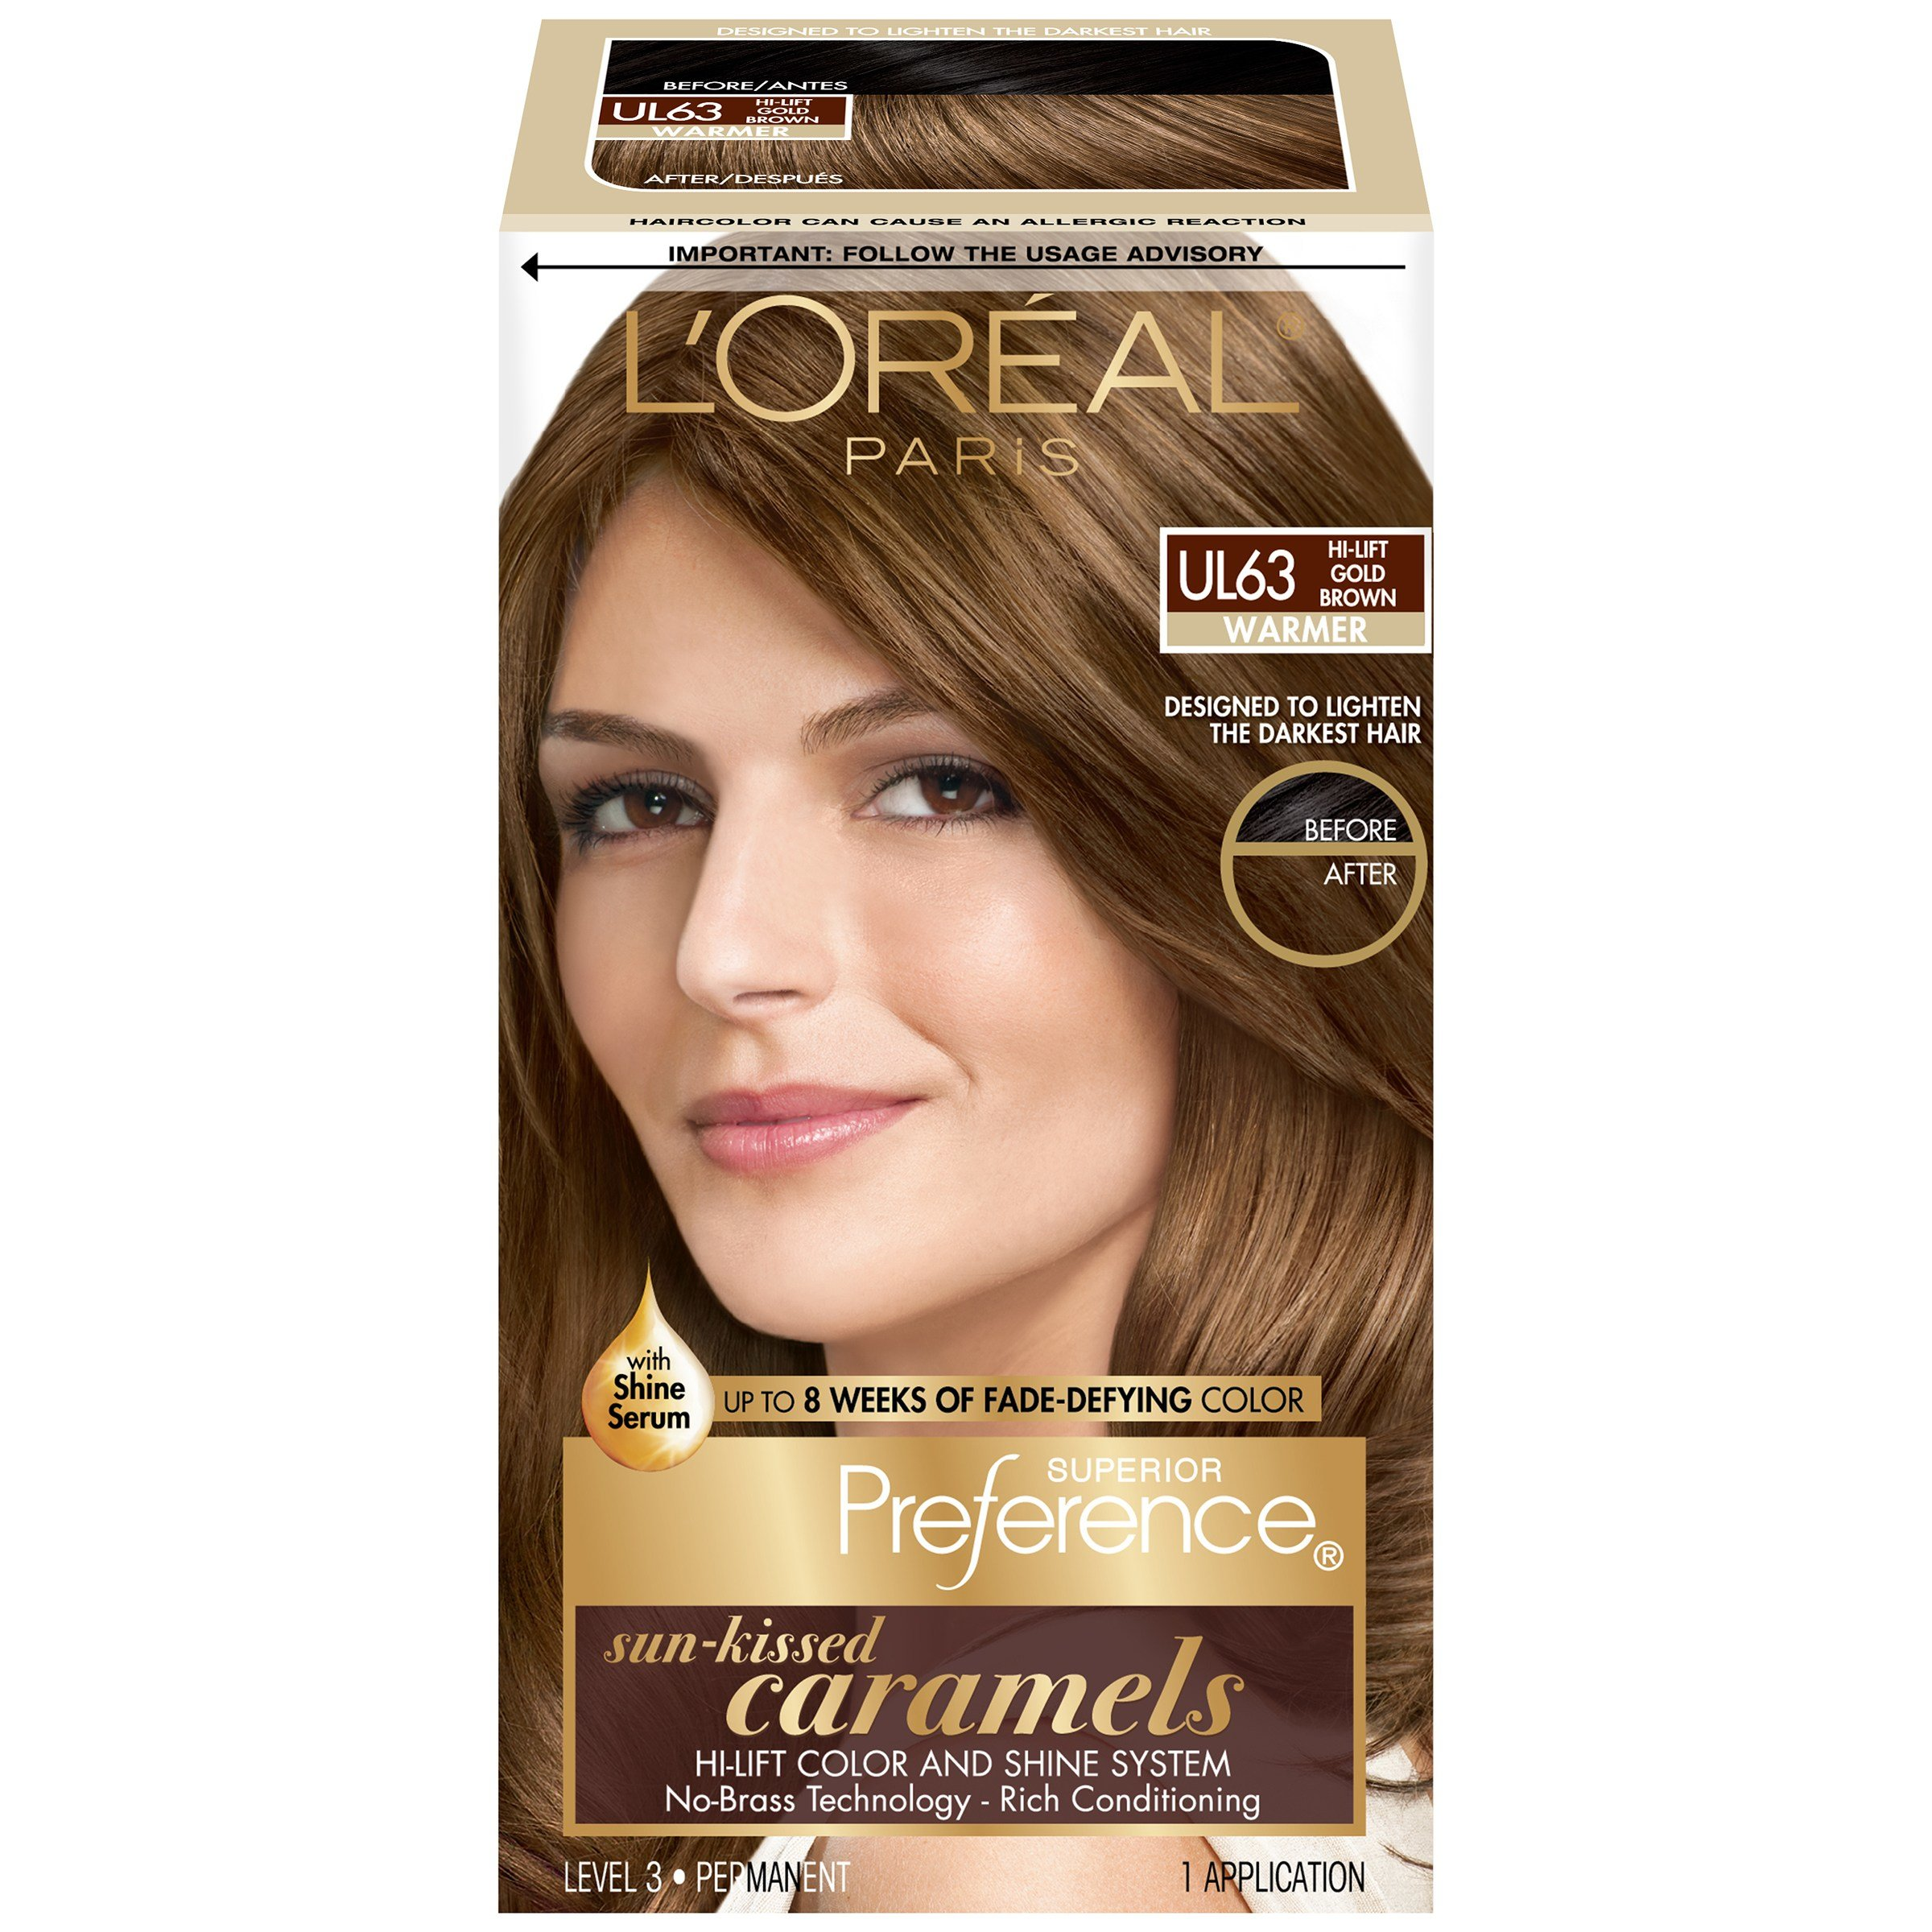 The Best L Oreal Ul63 Warmer Hi Lift Gold Brown Hair Color Box Pictures